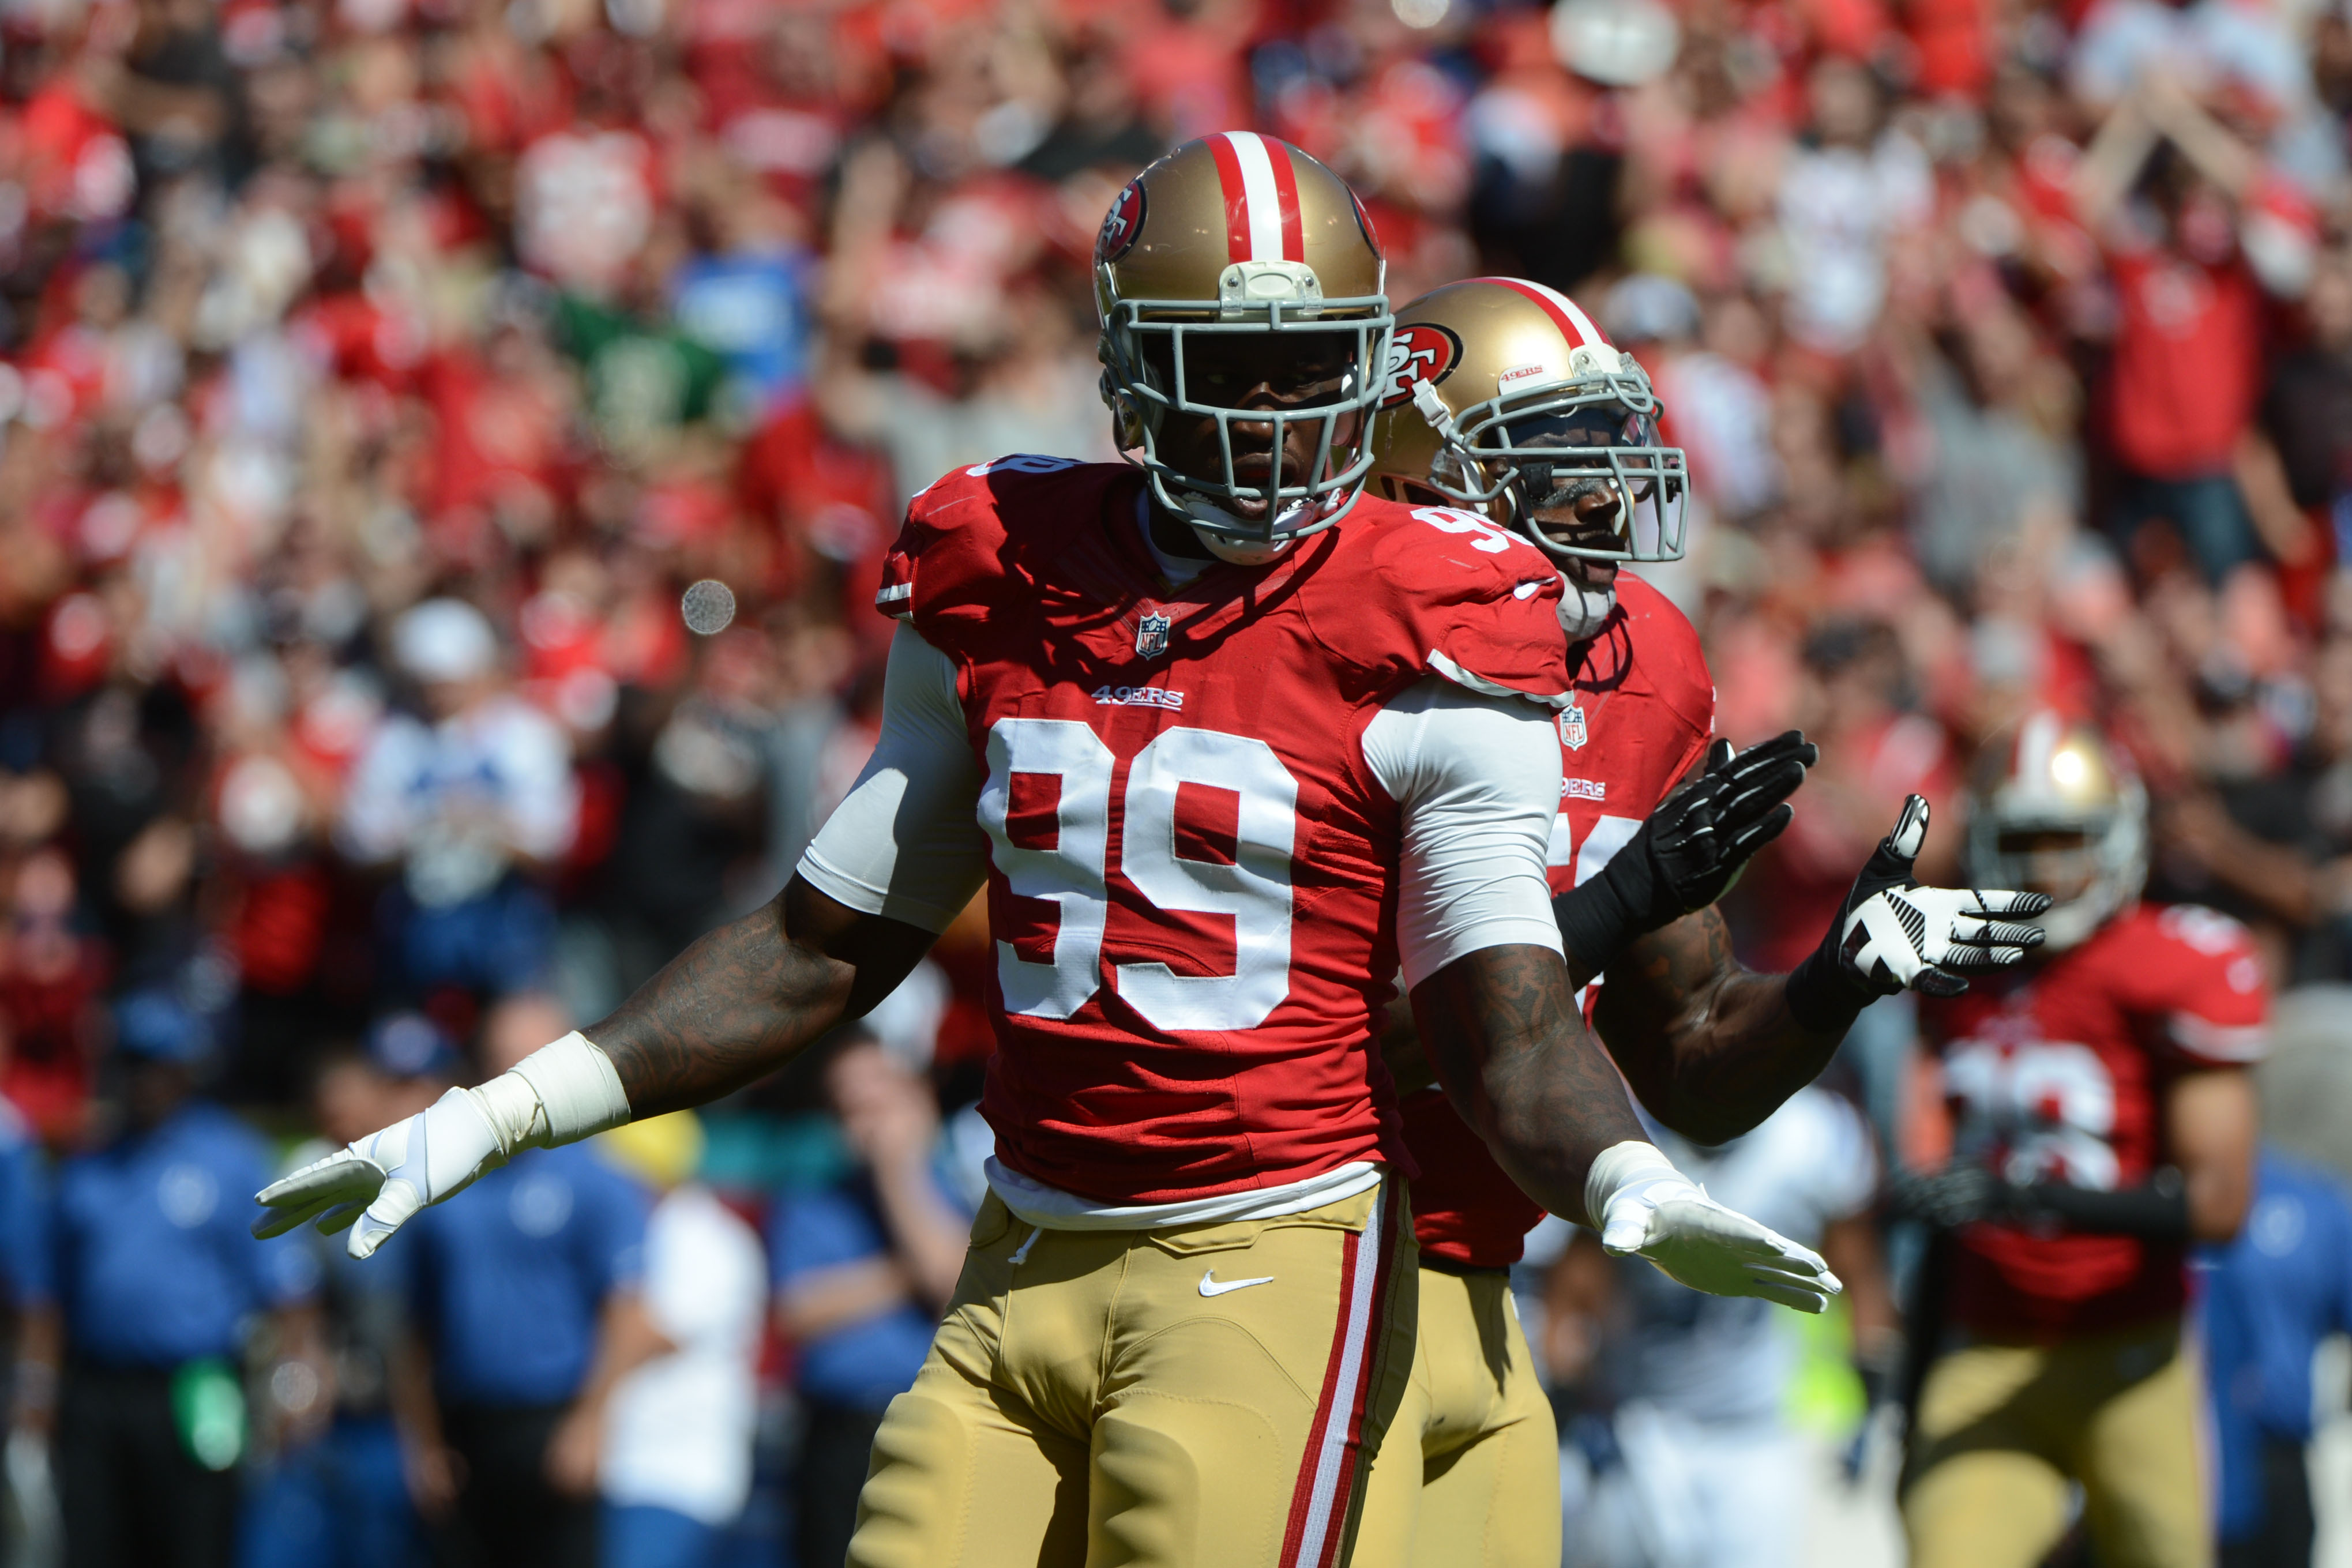 September 22, 2013; San Francisco, CA, USA; San Francisco 49ers outside linebacker Aldon Smith (99) celebrates after tackling Indianapolis Colts quarterback Andrew Luck (12, not pictured) during the first quarter at Candlestick Park. Mandatory Credit: Kyle Terada-USA TODAY Sports ORG XMIT: USATSI-132644 ORIG FILE ID:  20130922_kkt_st3_036.jpg